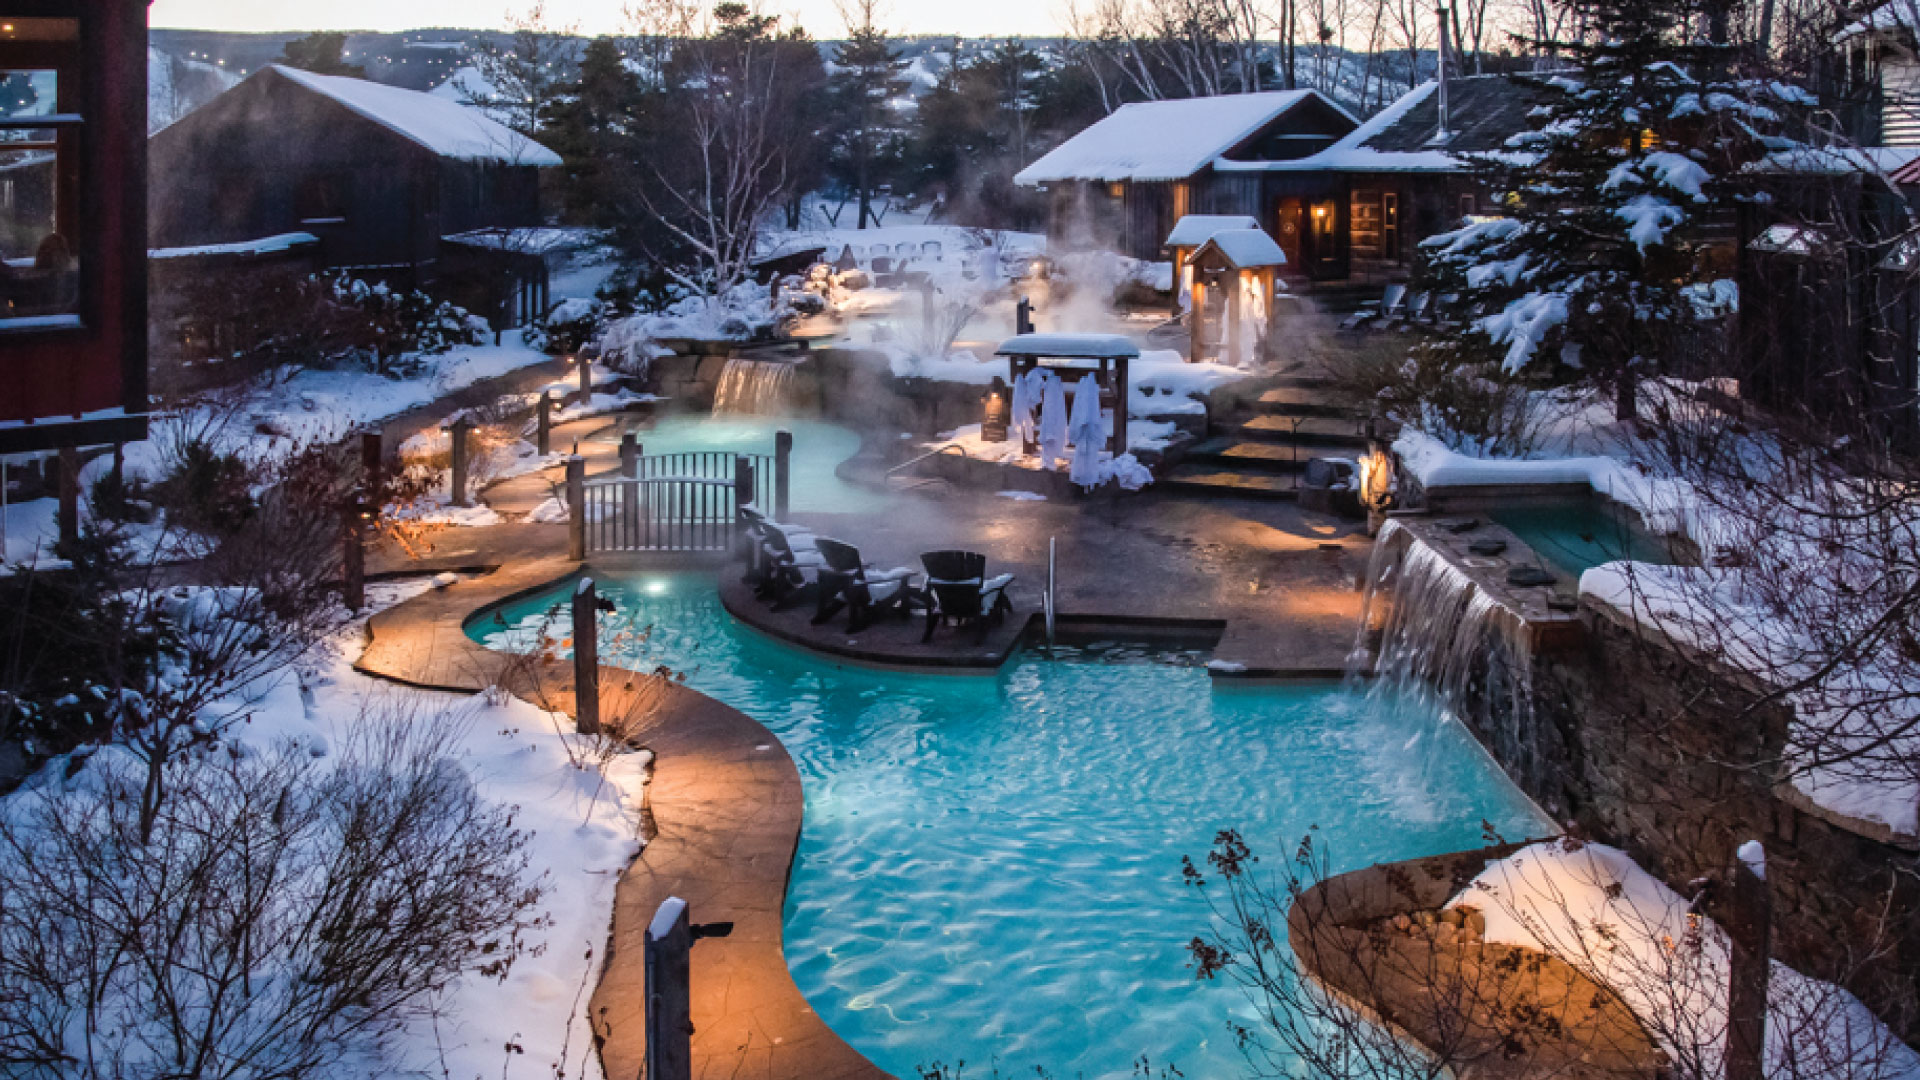 Evening at Scandinave Spa with the Blue Mountain Resort in the backgroun.